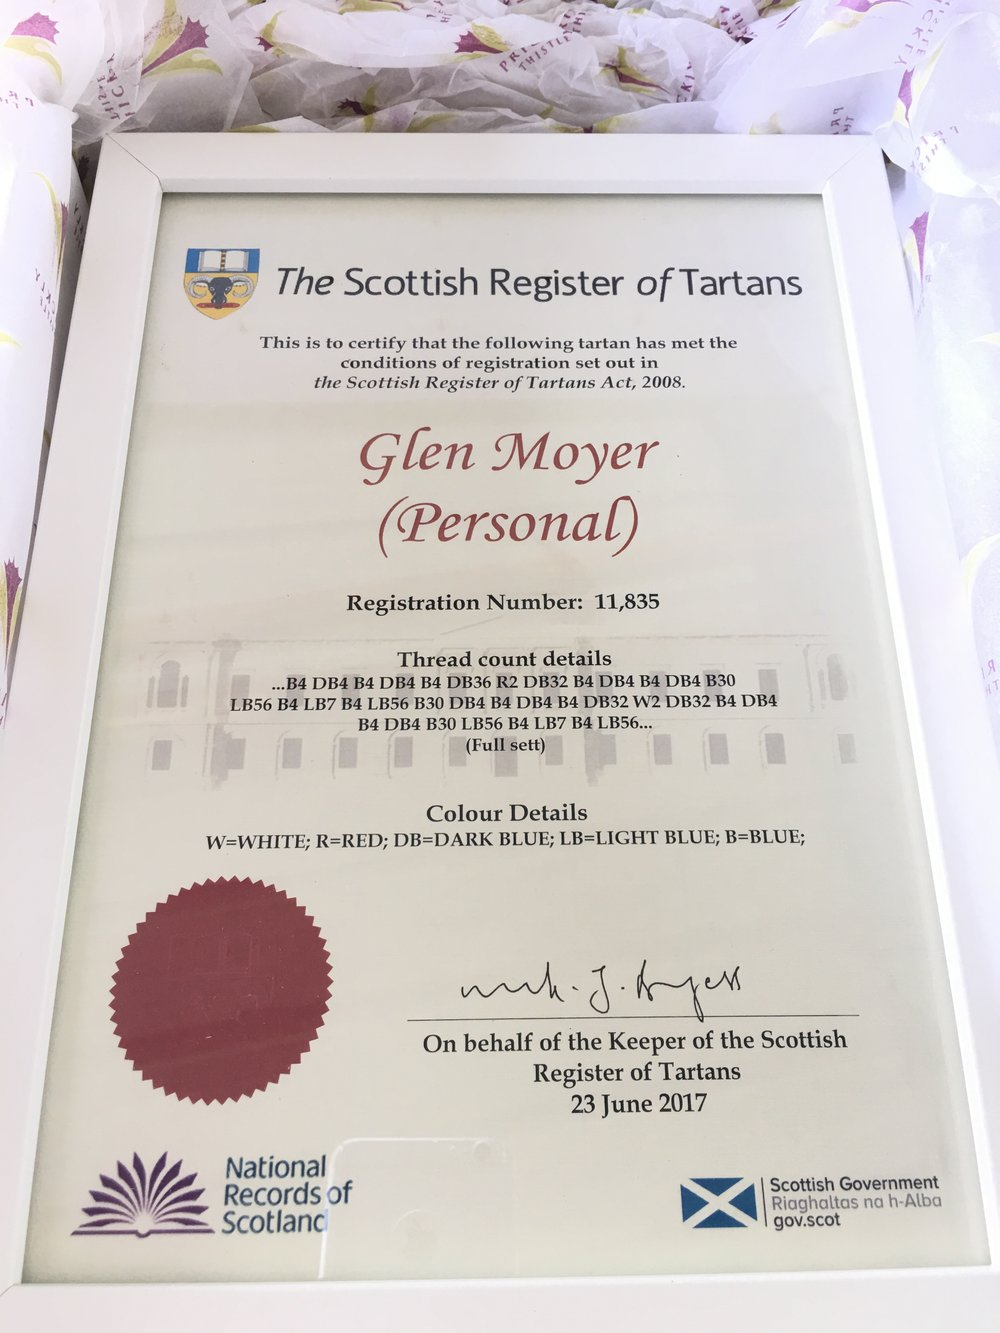 An incredibly proud day when this certificate arrived - my story was now a part of Scottish history!